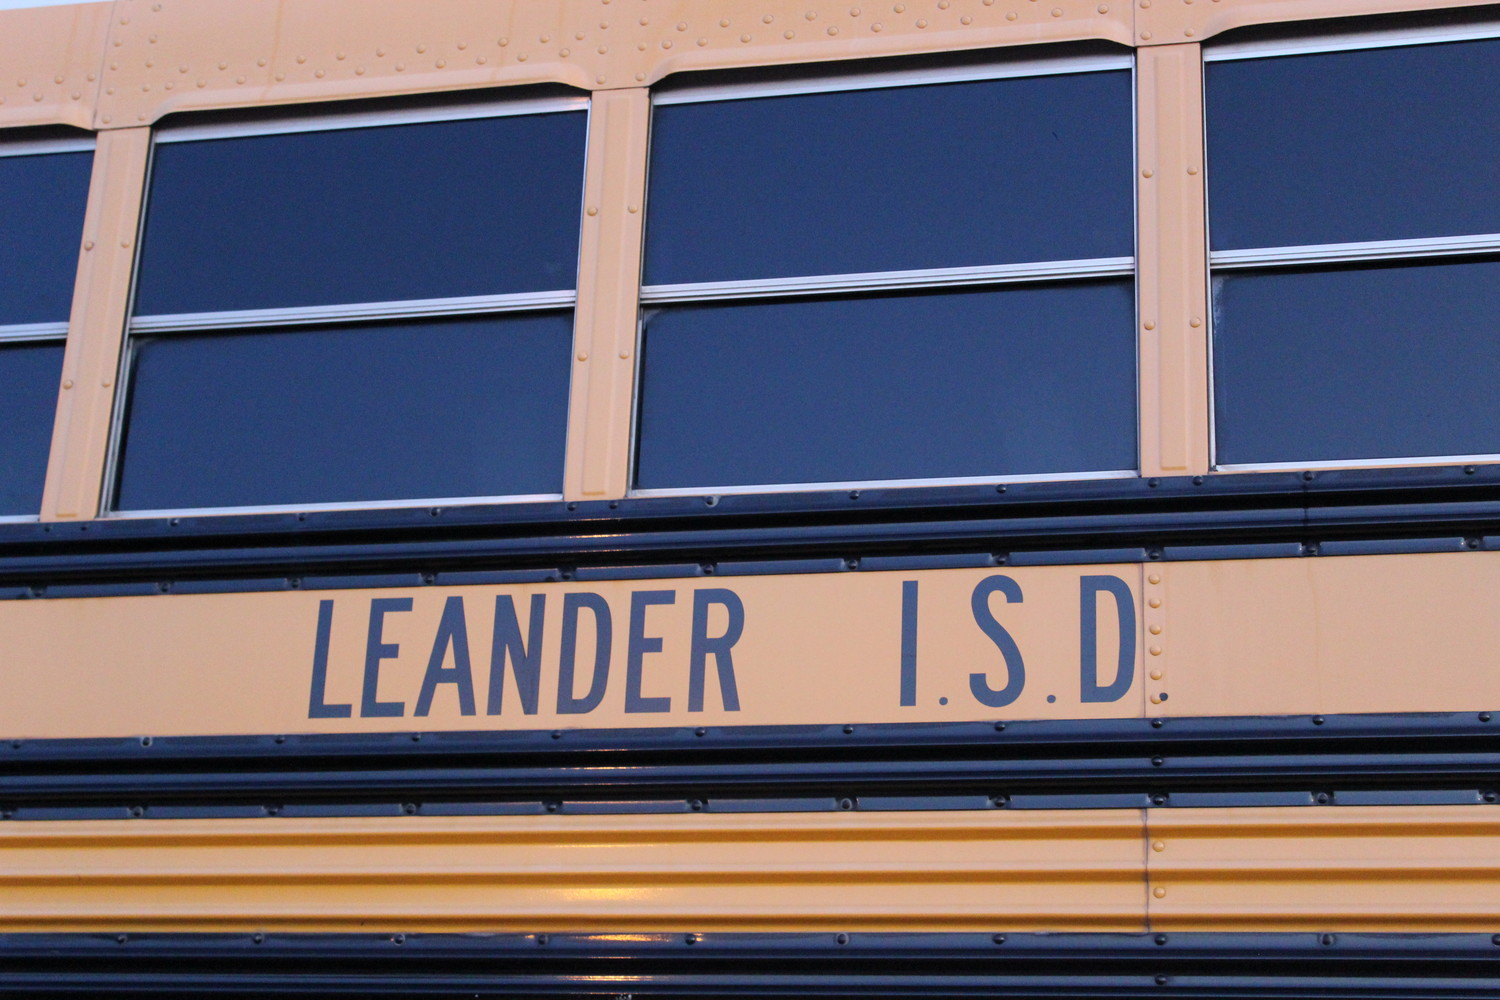 The Leander ISD board is considering options for retrofitting more than 150 school buses with air conditioning after recent concerns over excessive heat on its buses.